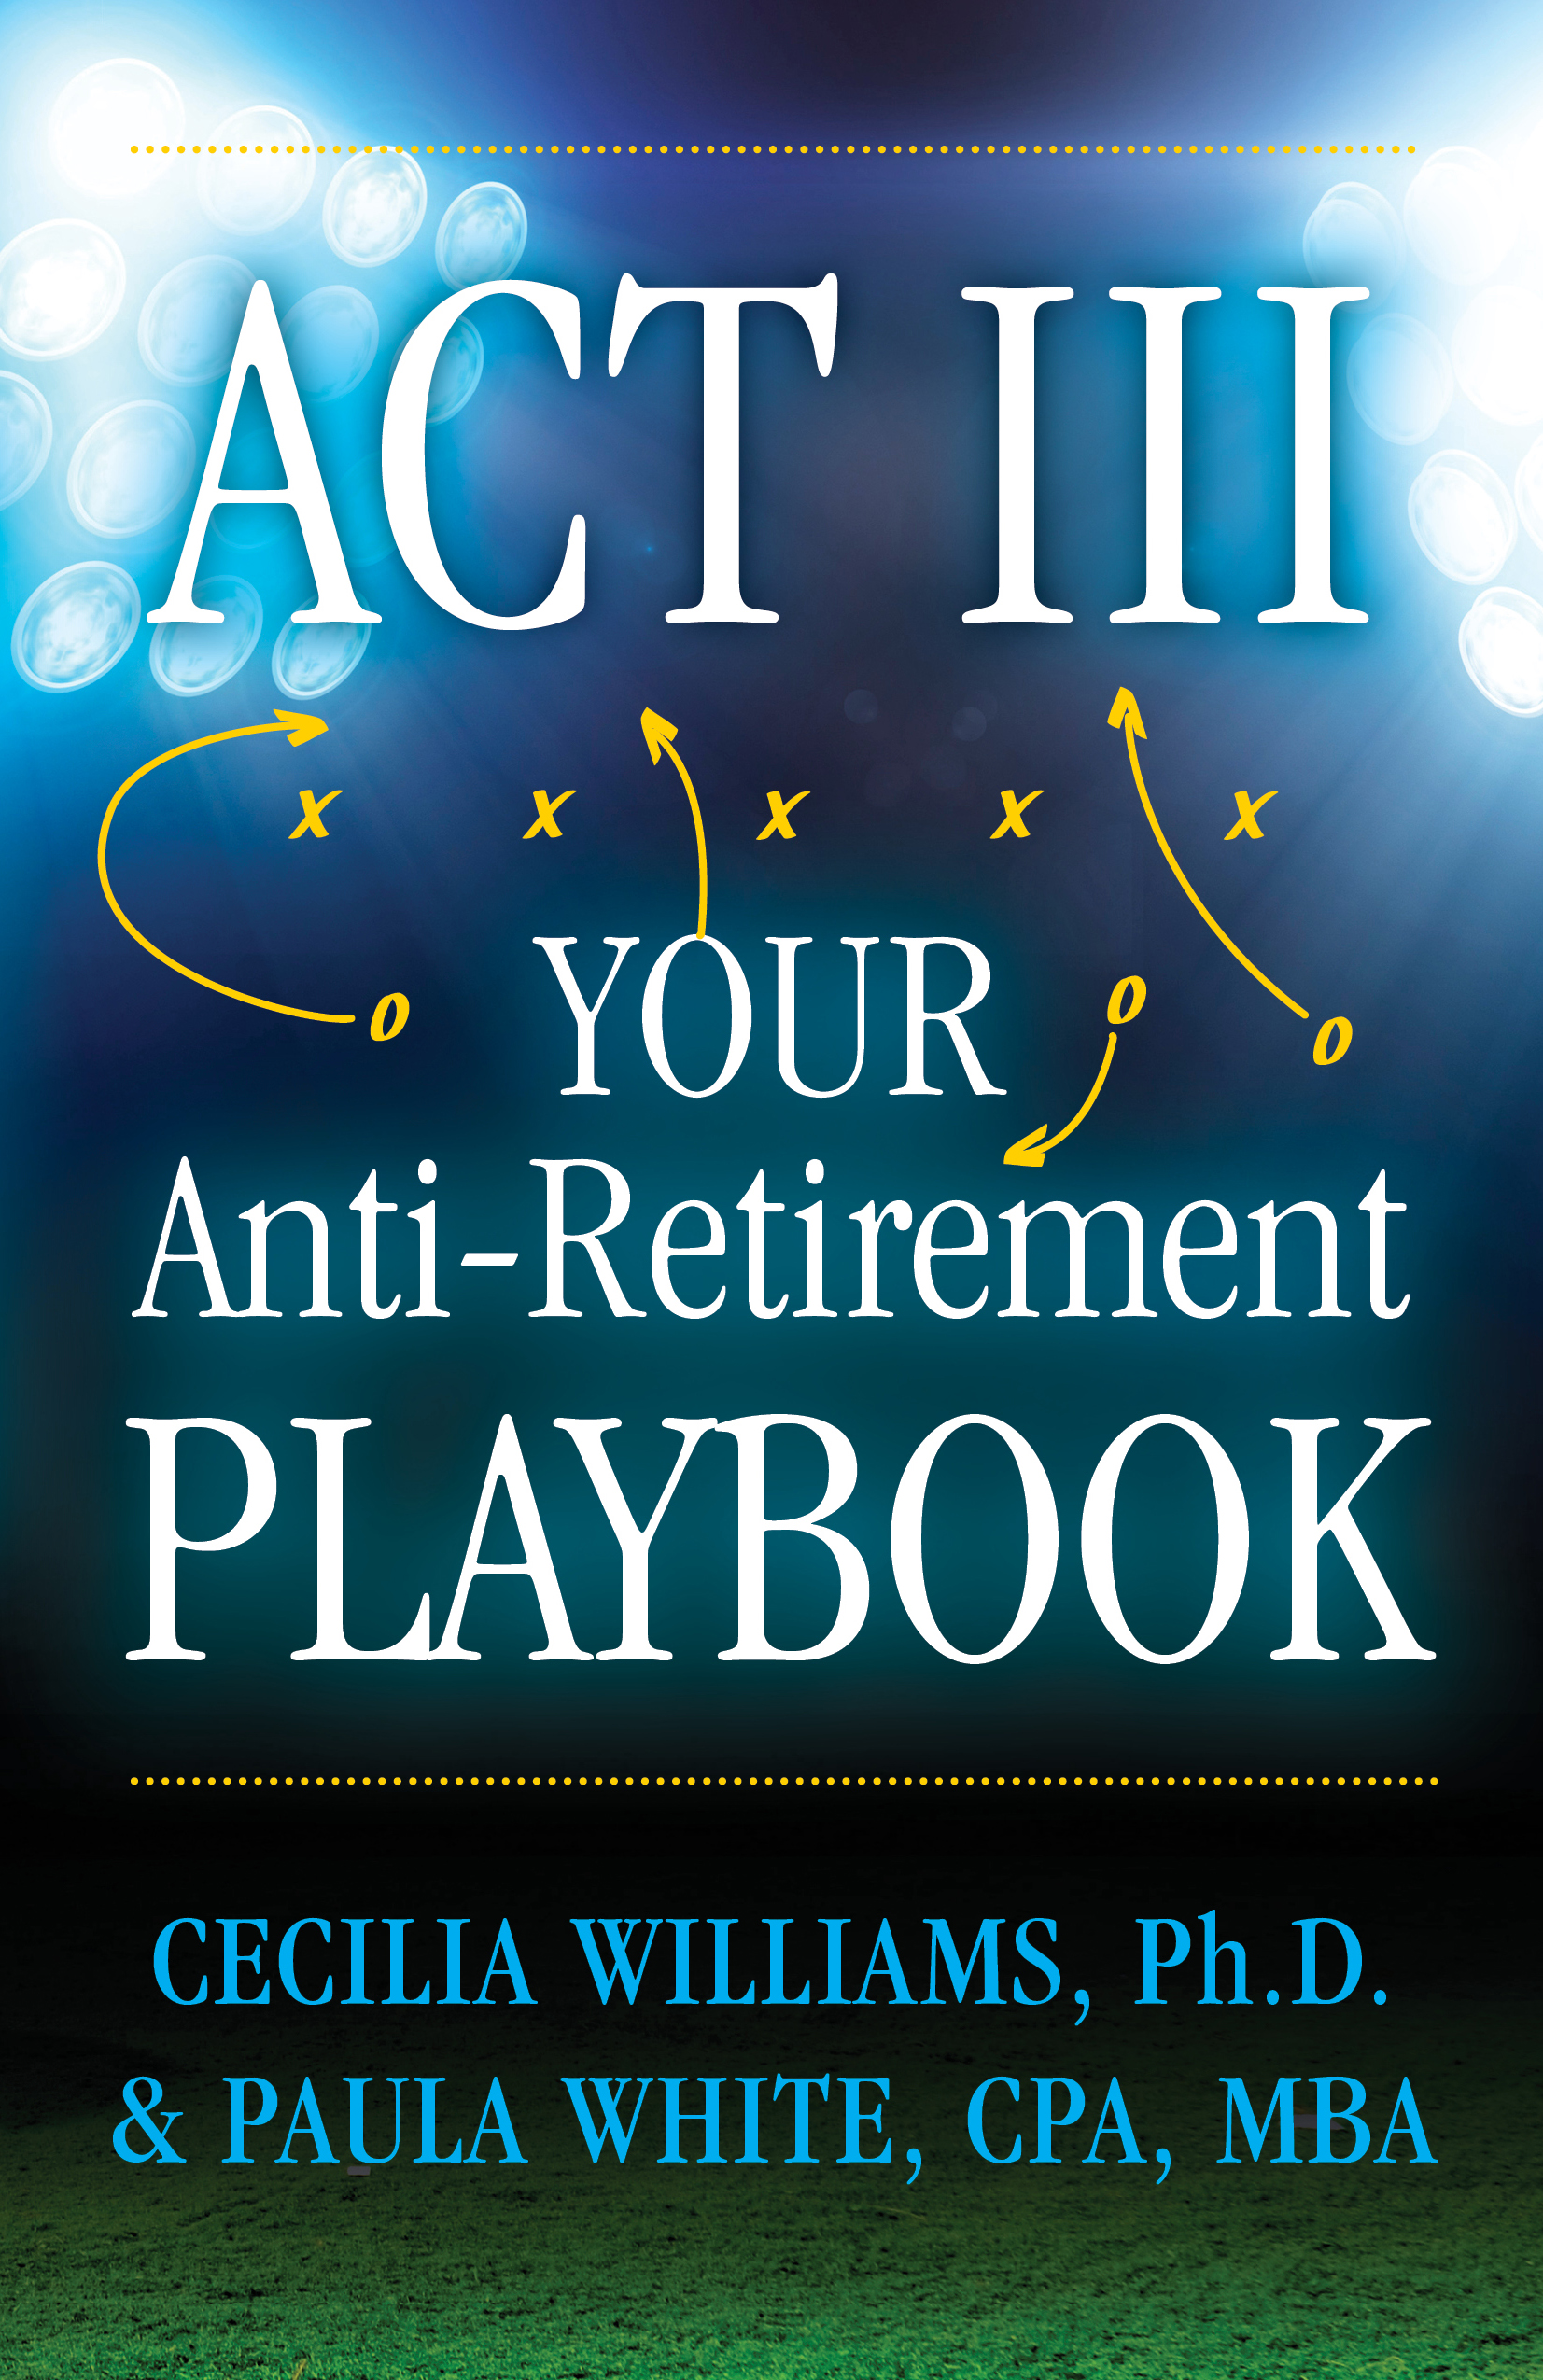 Act III Your Anti-Retirement Playbook